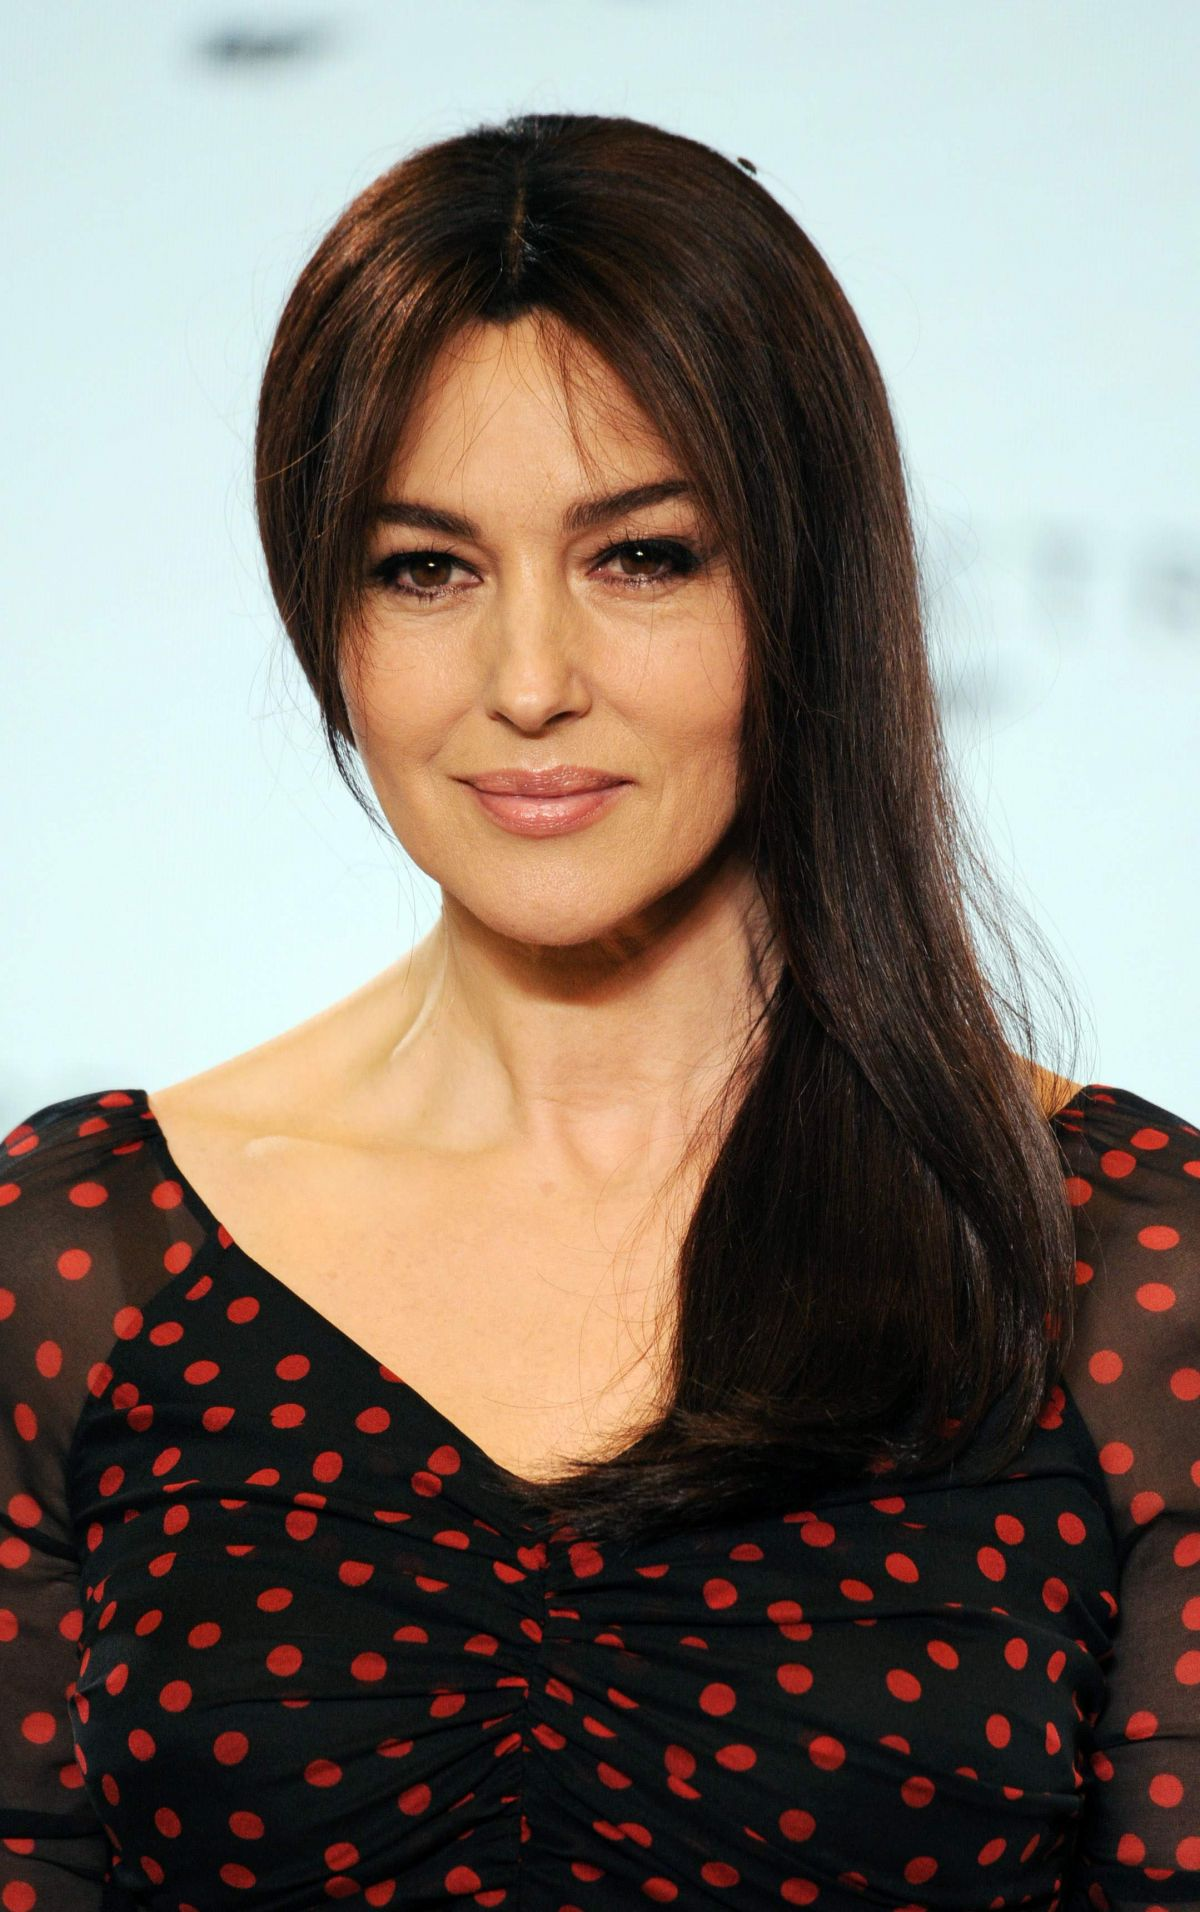 Monica Bellucci At Photocall For The 24th Bond Film 'Spectre' Monica Bellucci